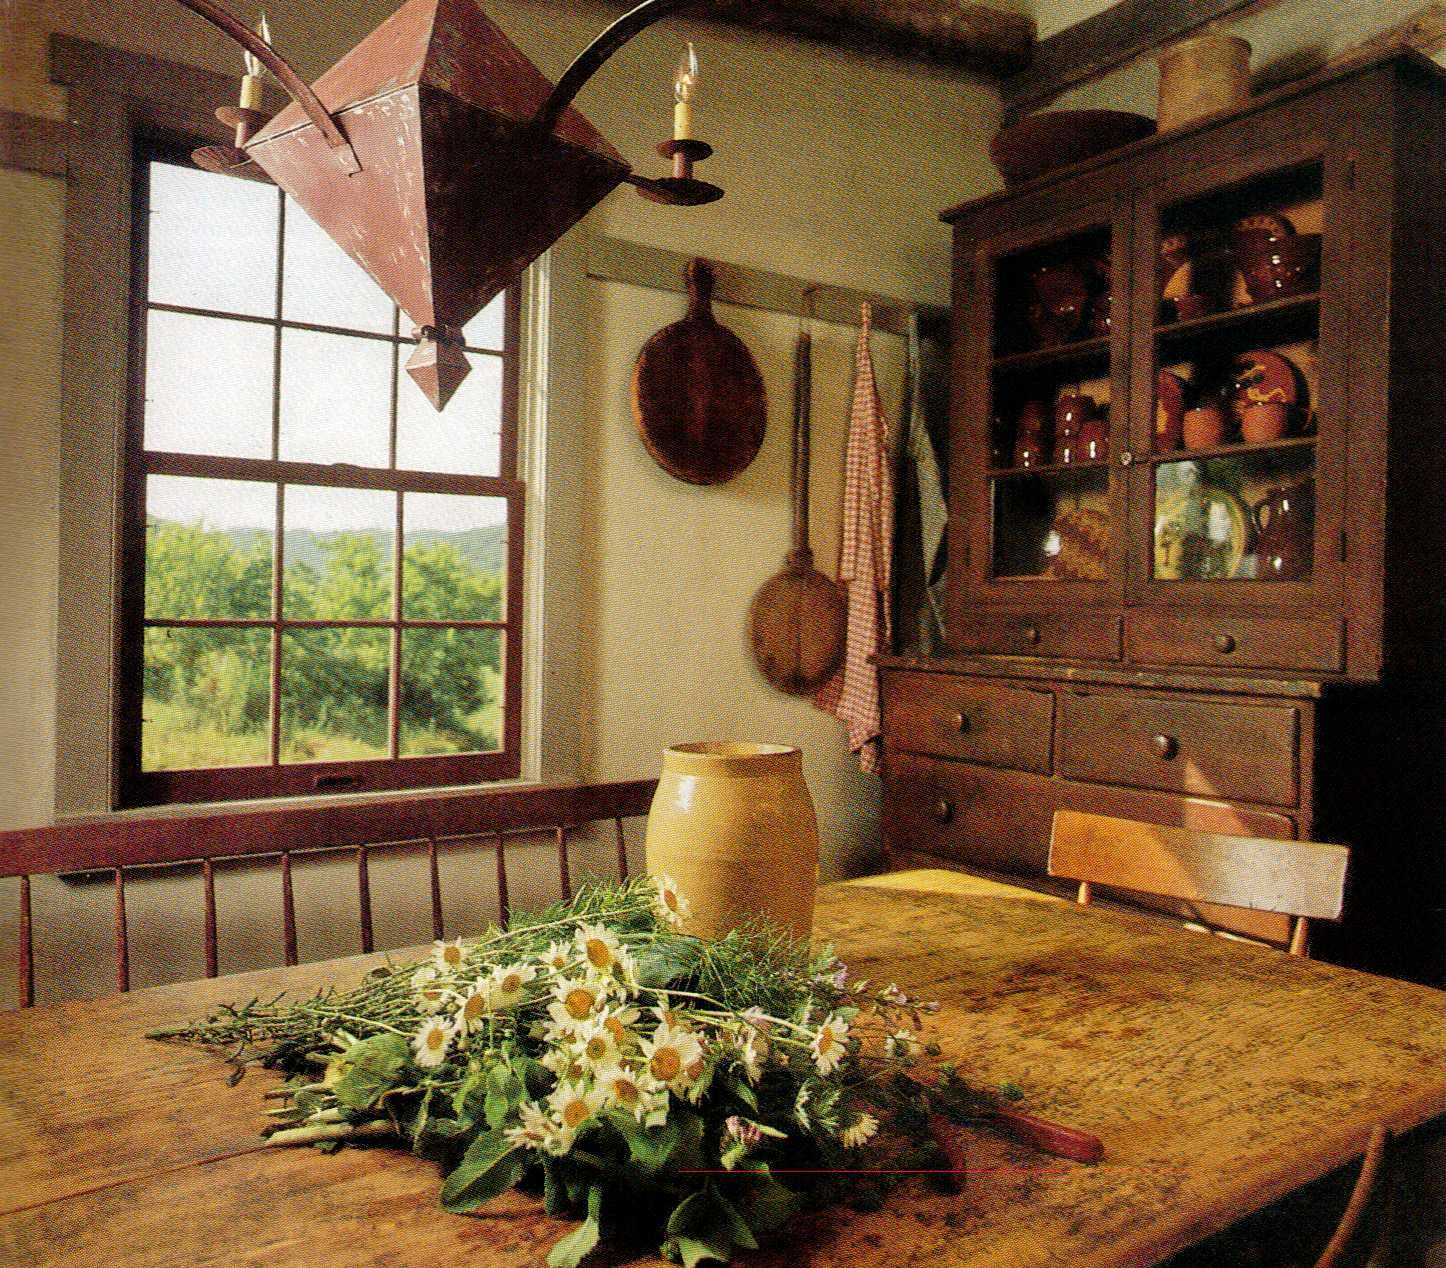 Pin by Maureen Kot on Primitive/ Colonial Interiors | Pinterest